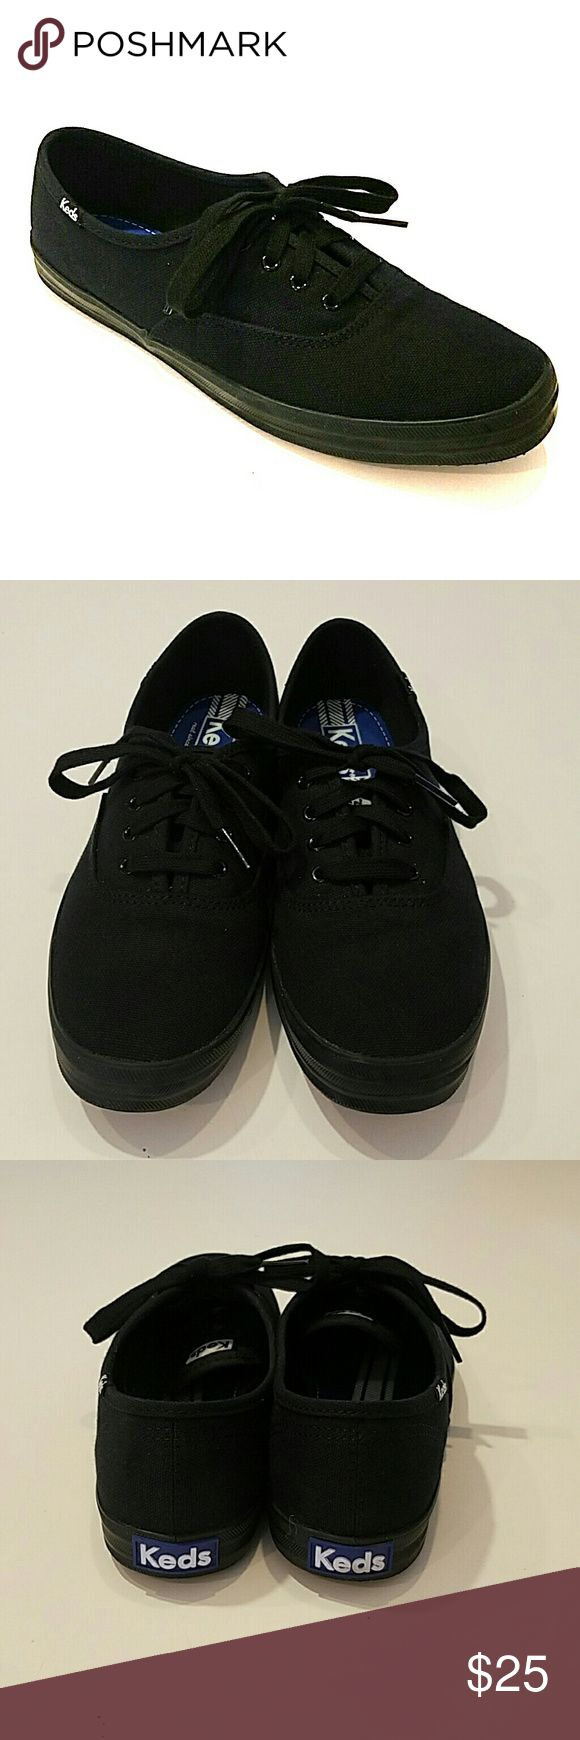 Keds Champion Originals Black/Black Newly purchased in November of 2016 and only worn 4 times. Absolutely nothing wrong with them, just uncomfortable for my slightly wide set feet and unfortunately have to let them go :( No box included, but I promise they are clean! $25 OR best offer. Keds Shoes Sneakers